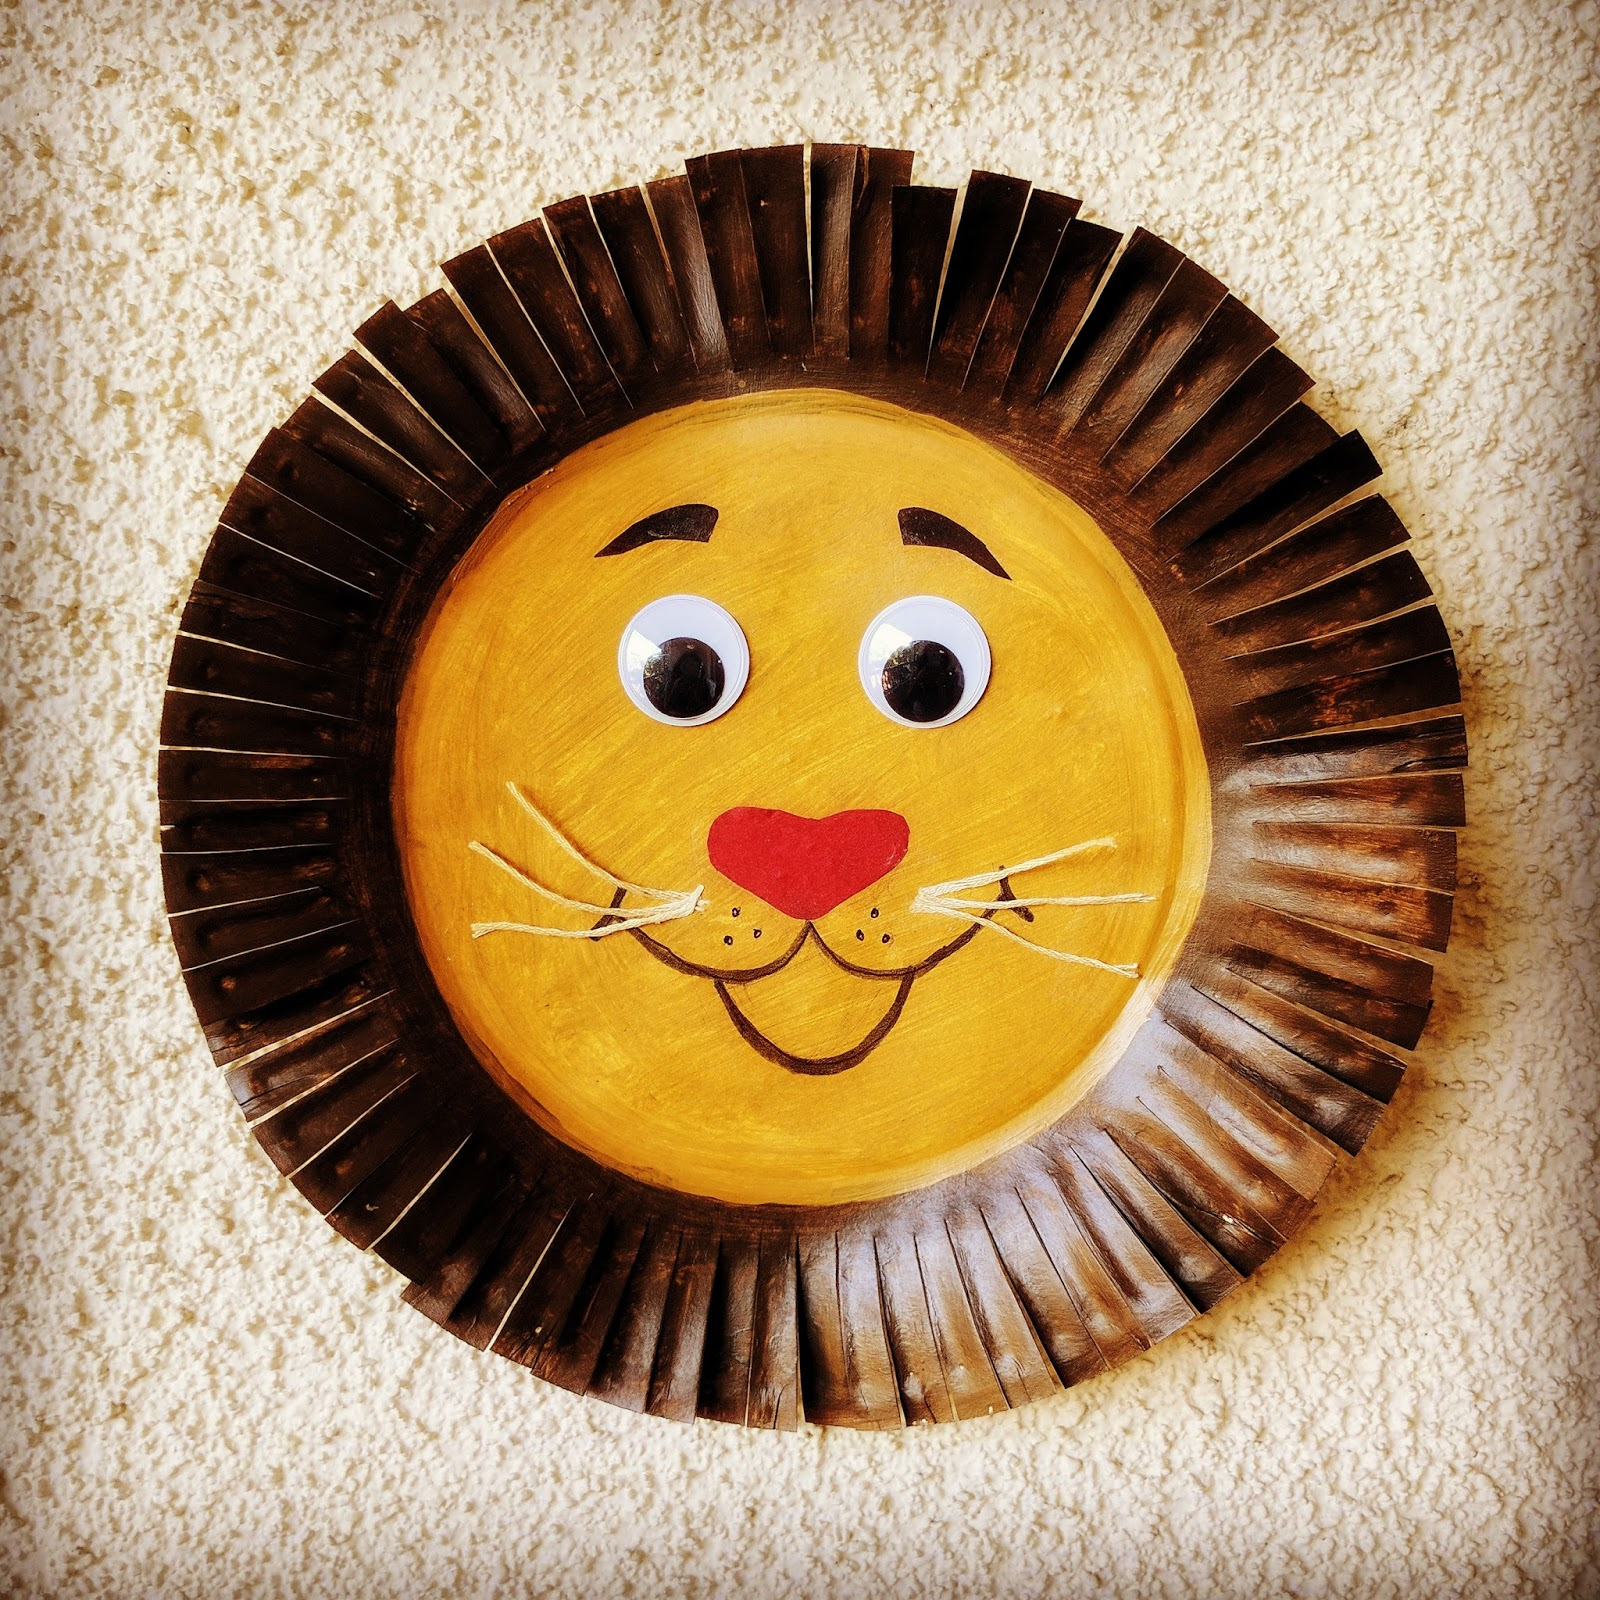 Paper Plate Lion Craft & The Joy of Sharing: Paper Plate Lion Craft